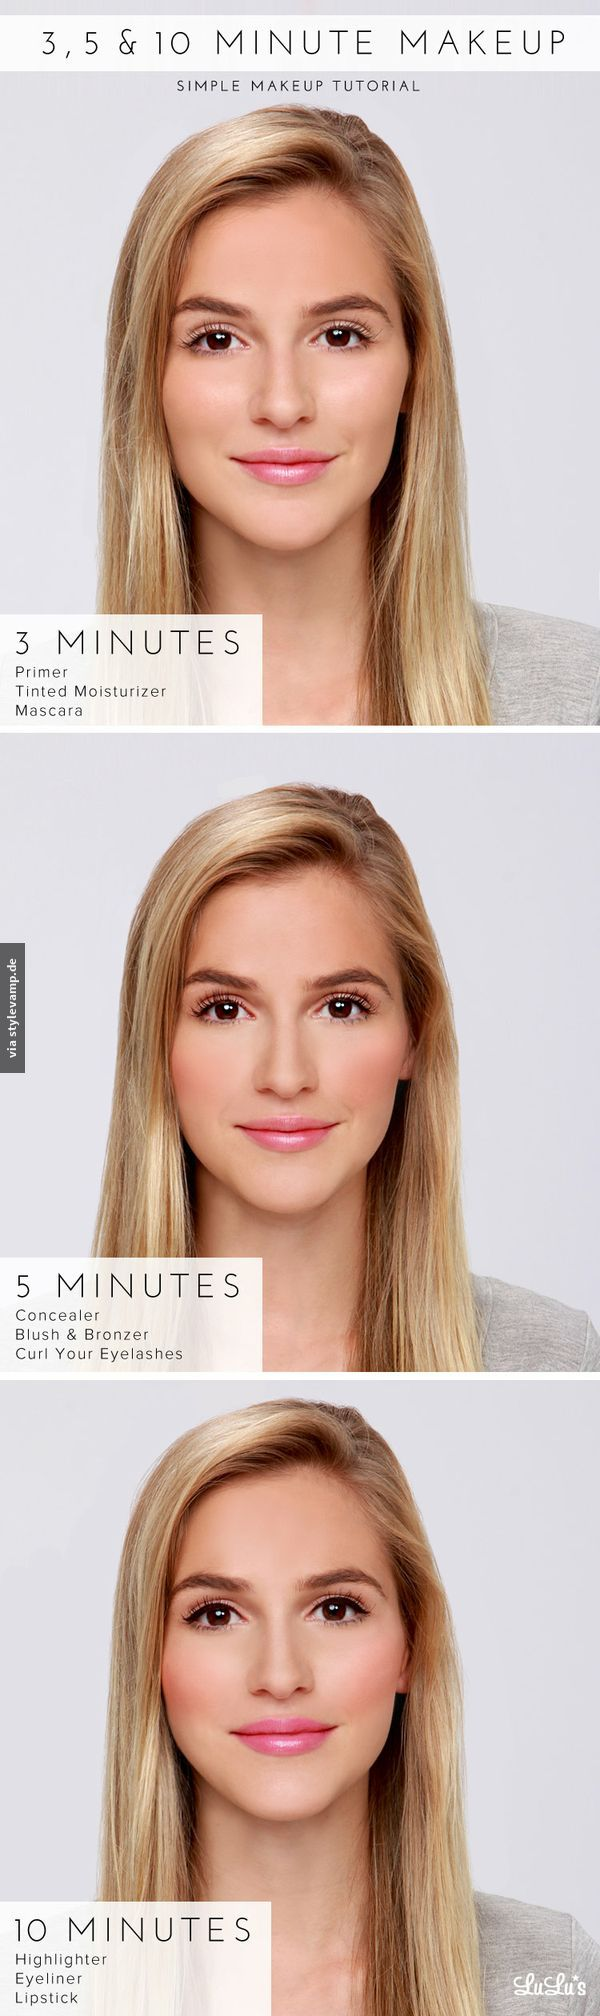 best before after images on pinterest actresses before after